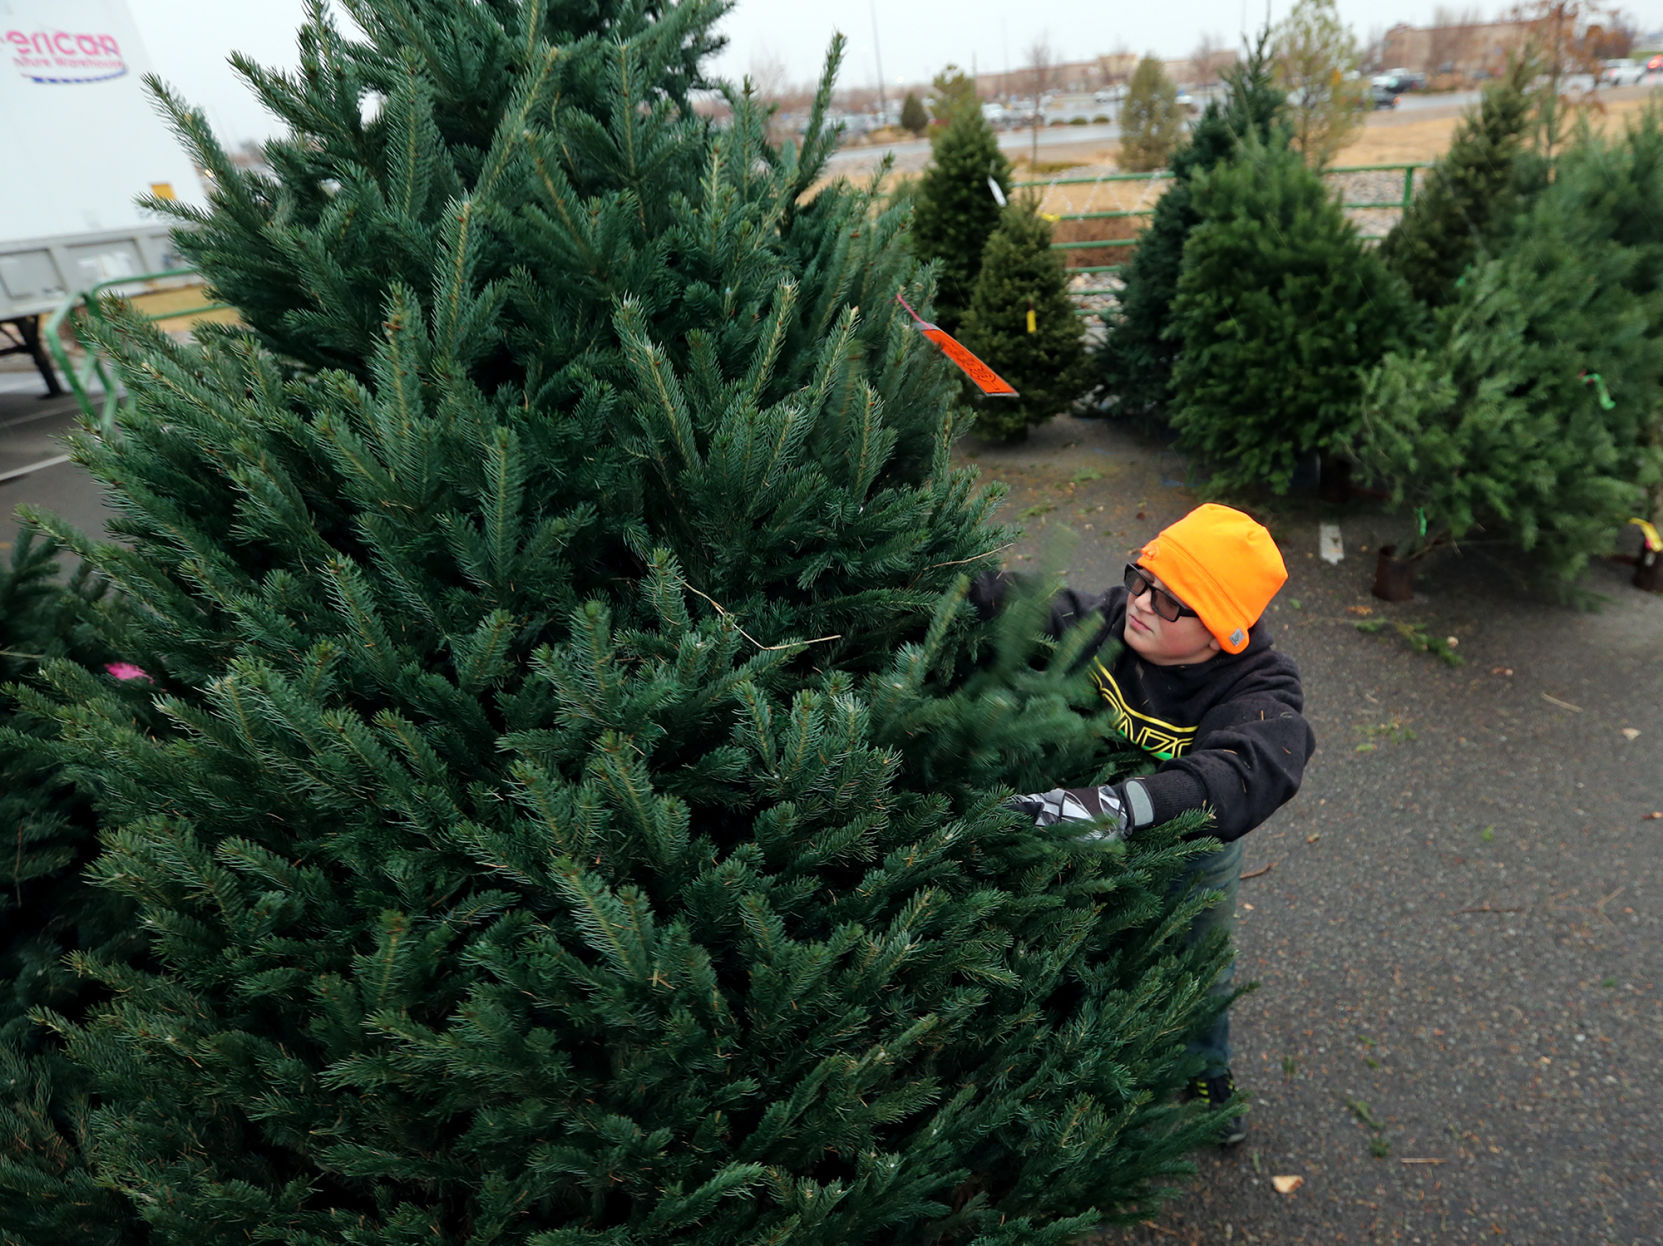 300 Christmas trees shipped out to troops and their families